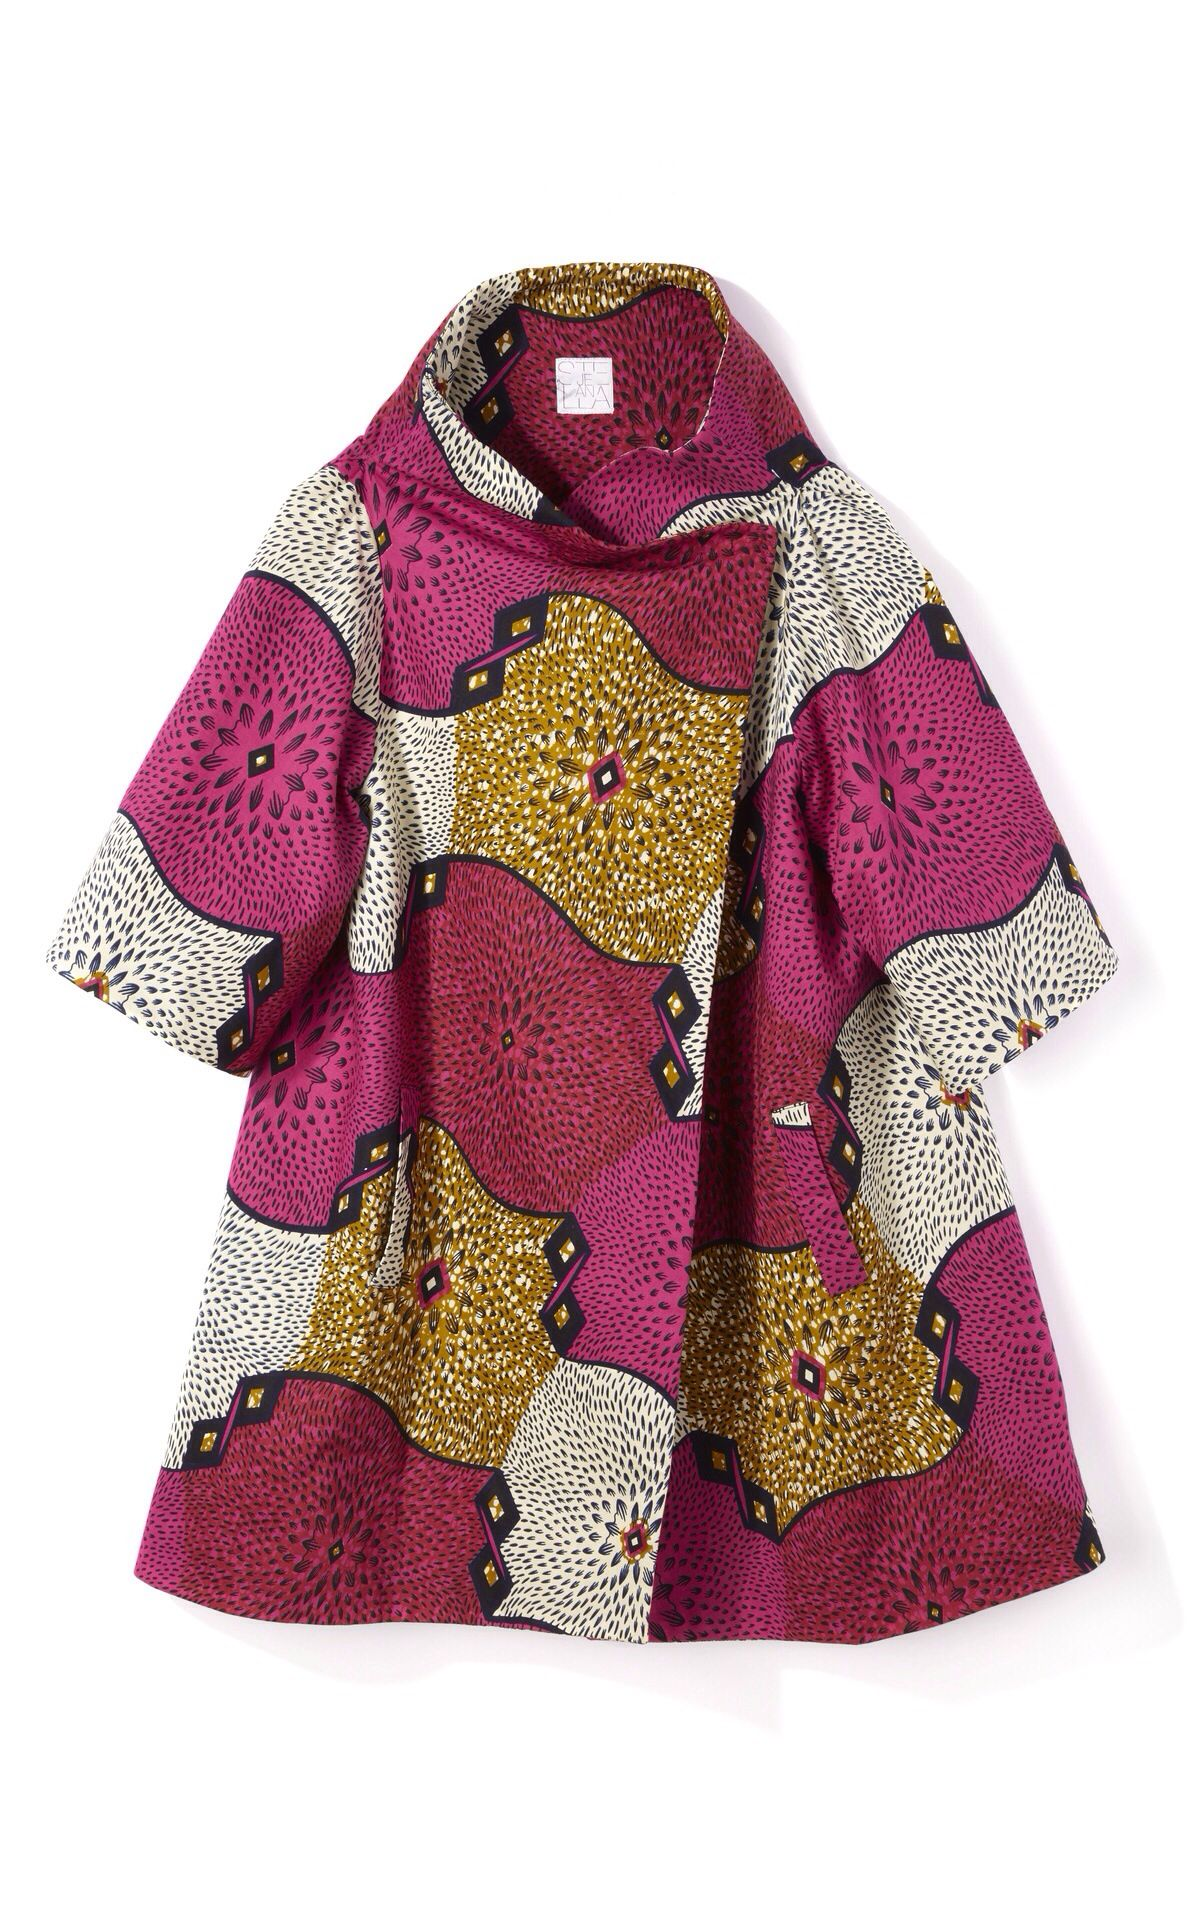 African fashion | jackets | African print fashion, African ...